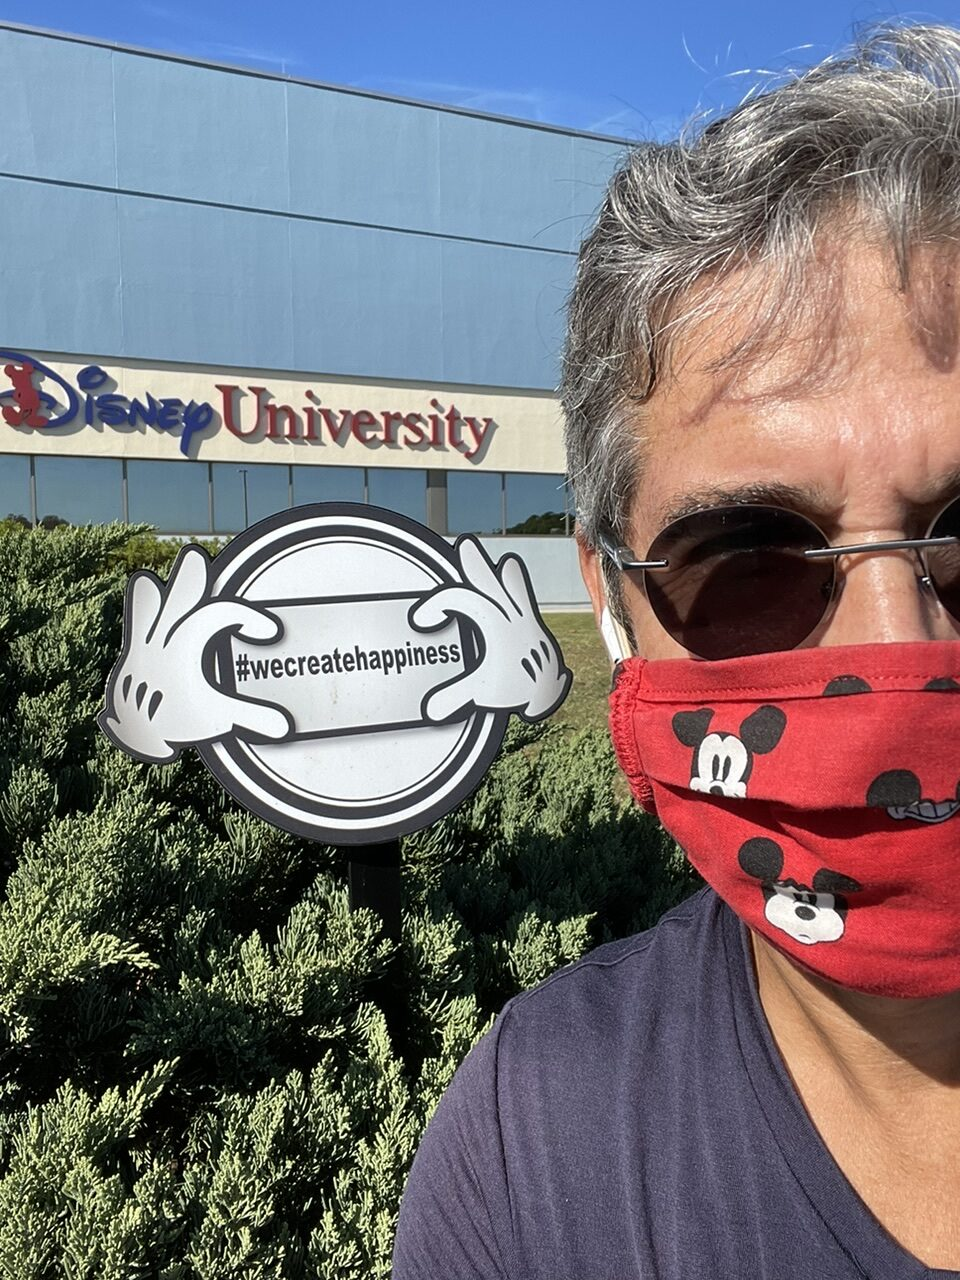 Man with Mickey Mouse face mask at Disney University